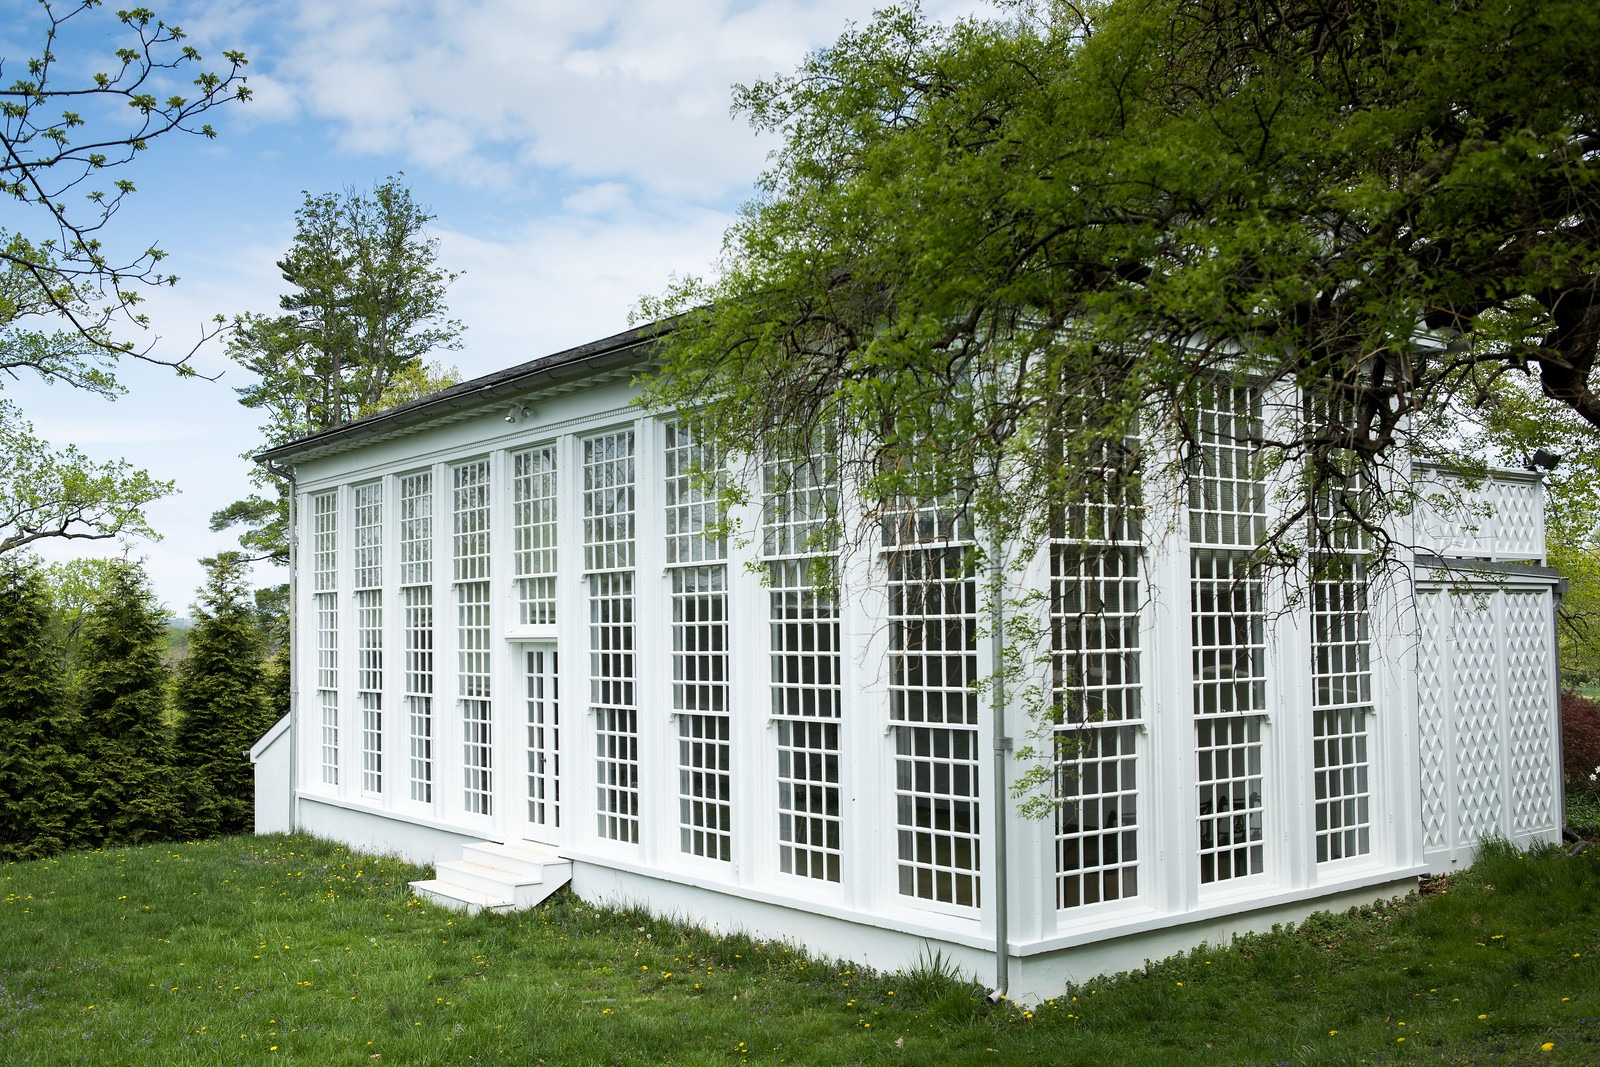 Orangery Green House in Hampton National Historic Site